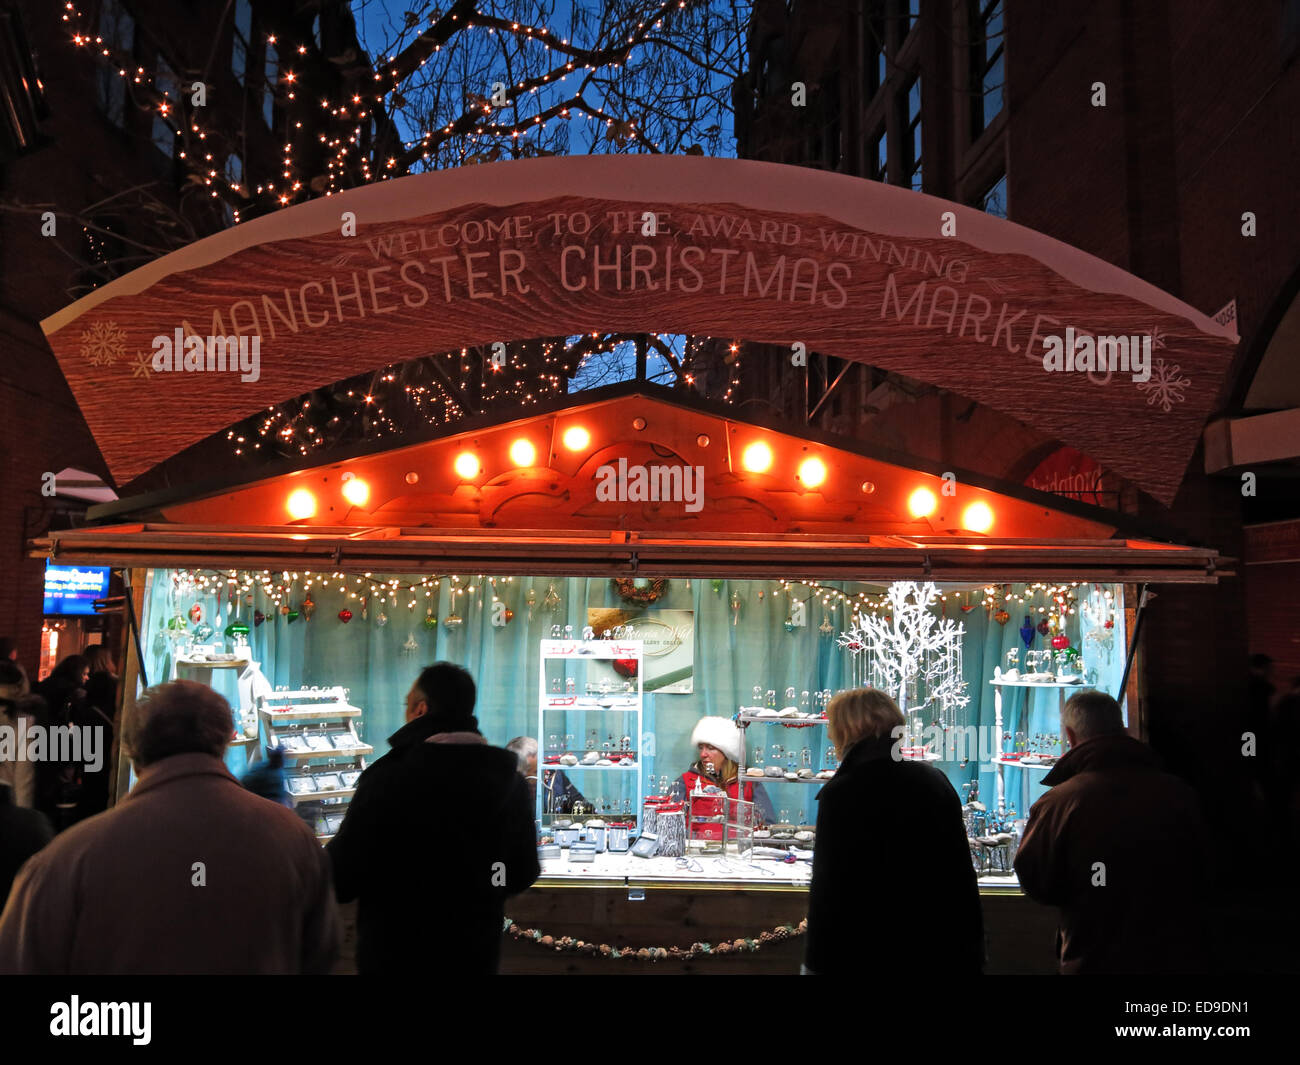 Welcome to Manchester city Xmas German markets Nov/Dec, England, UK at dusk - Stock Image